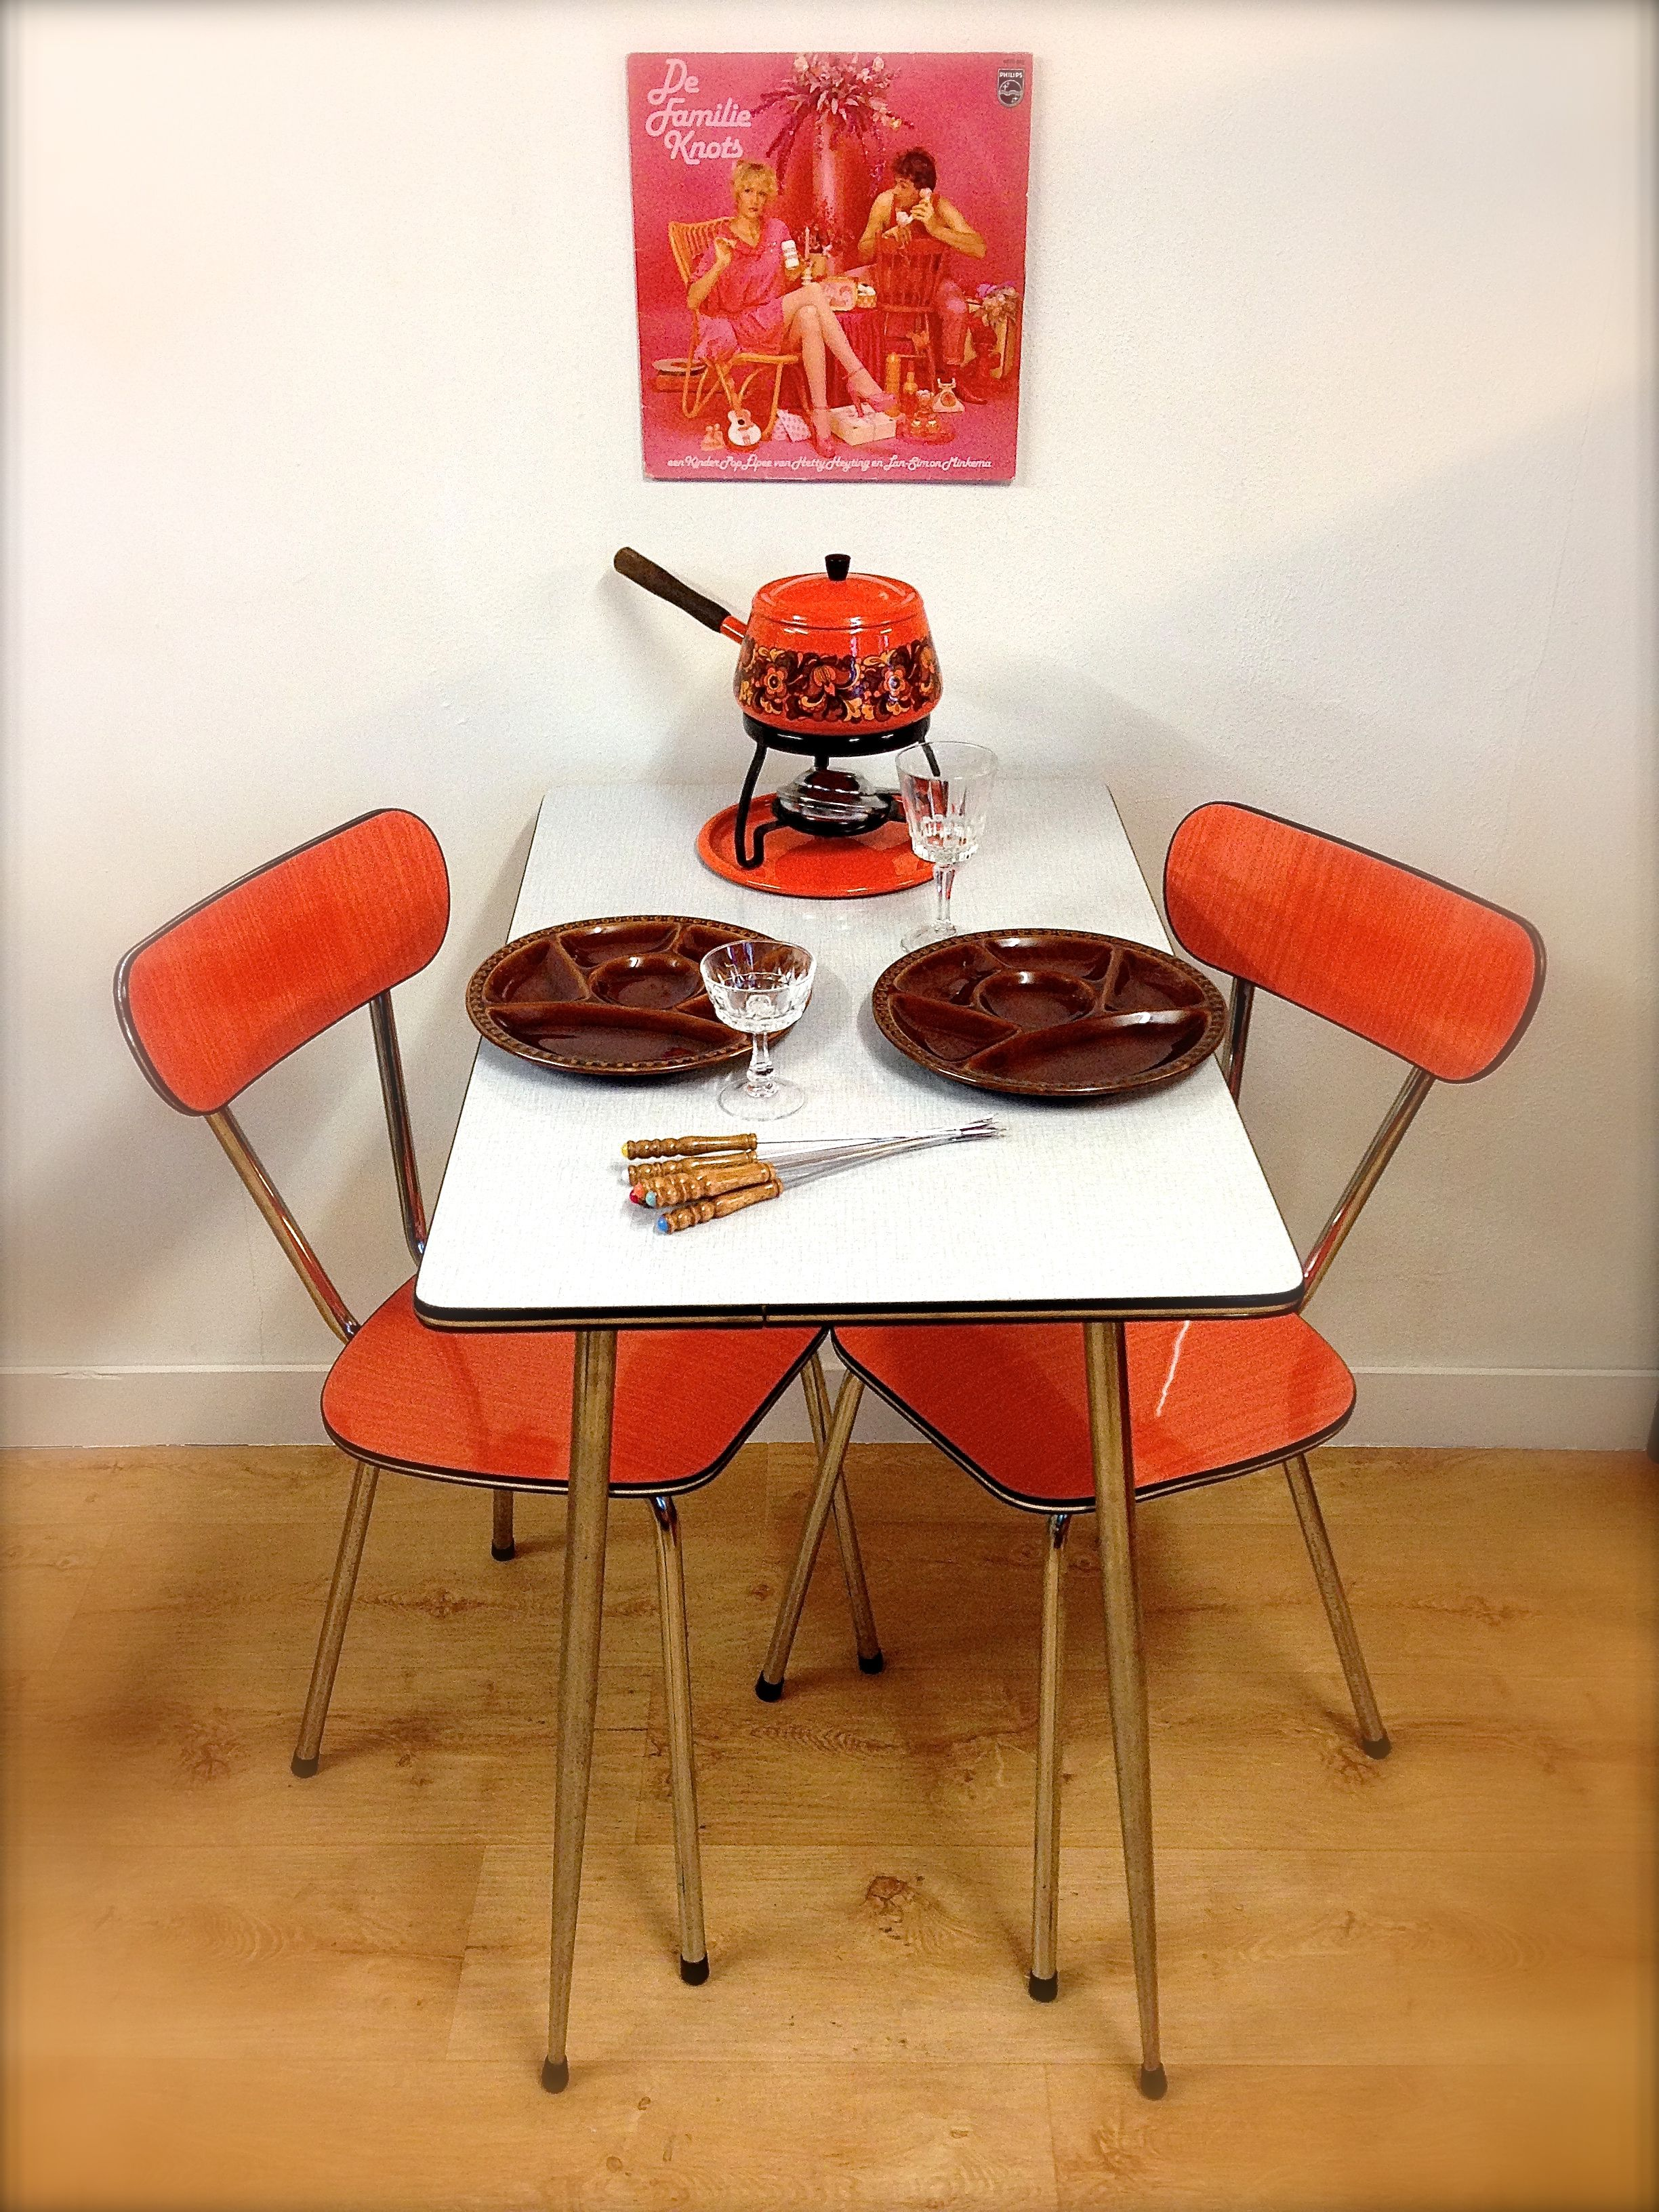 1950s formica kitchen table and chairs hutch cabinet tafel en stoelen retro